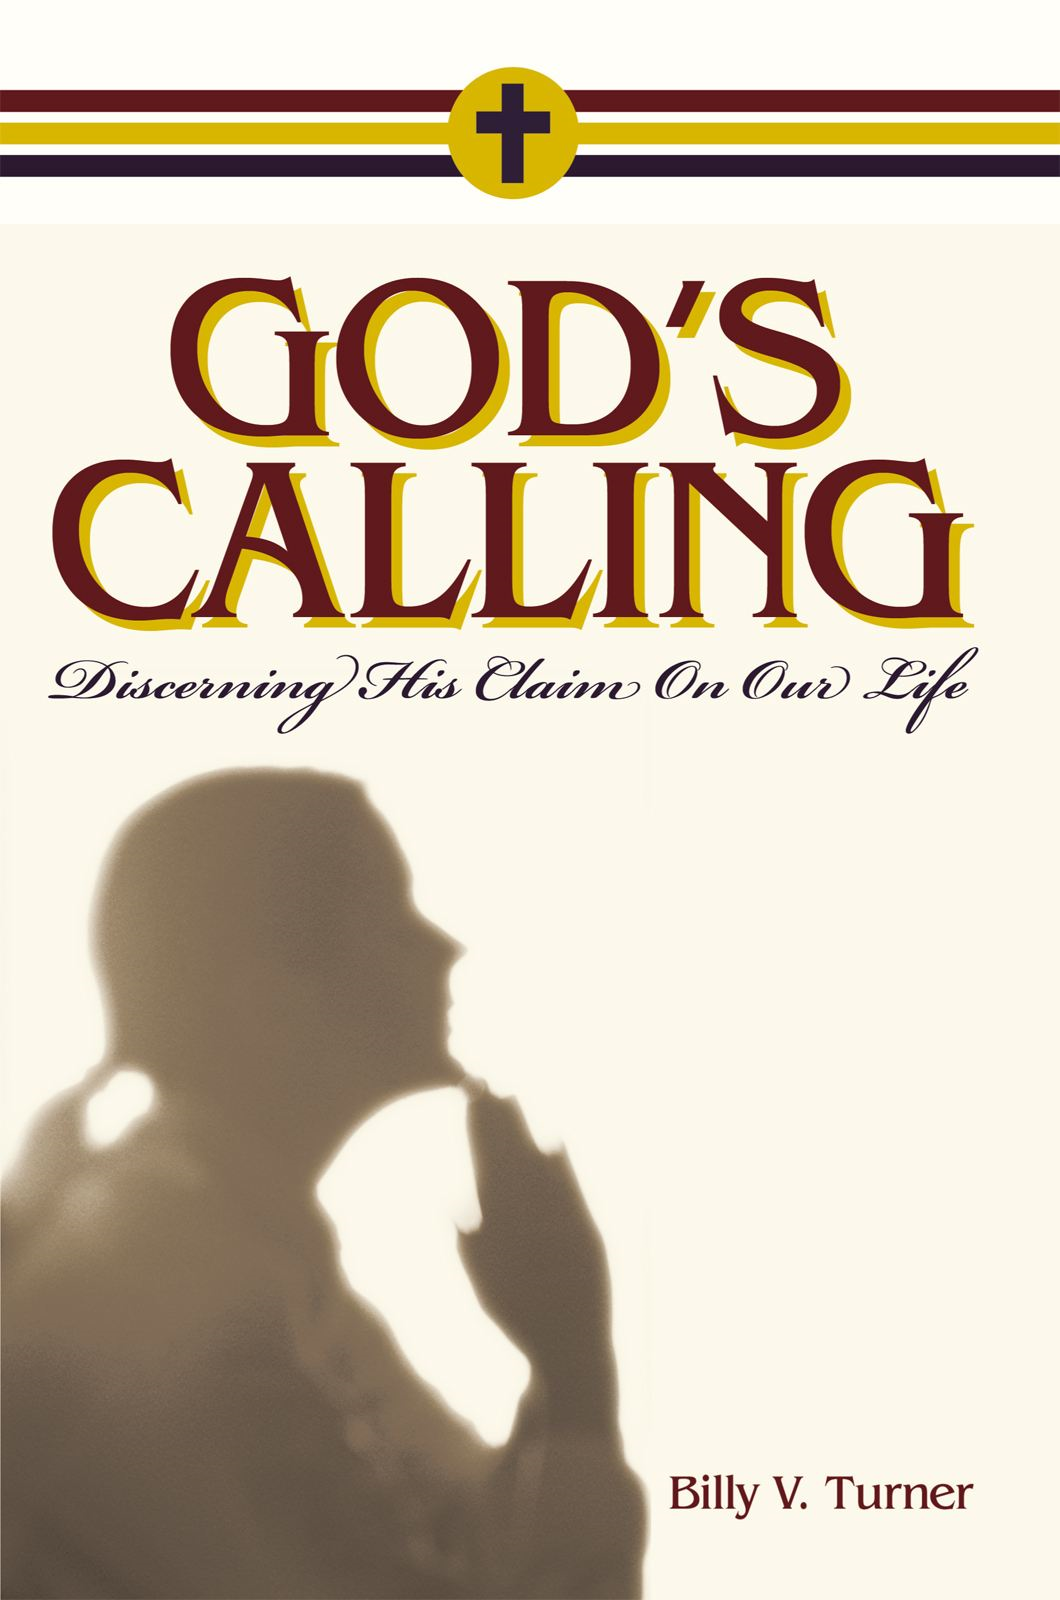 God's Calling By: Billy V. Turner